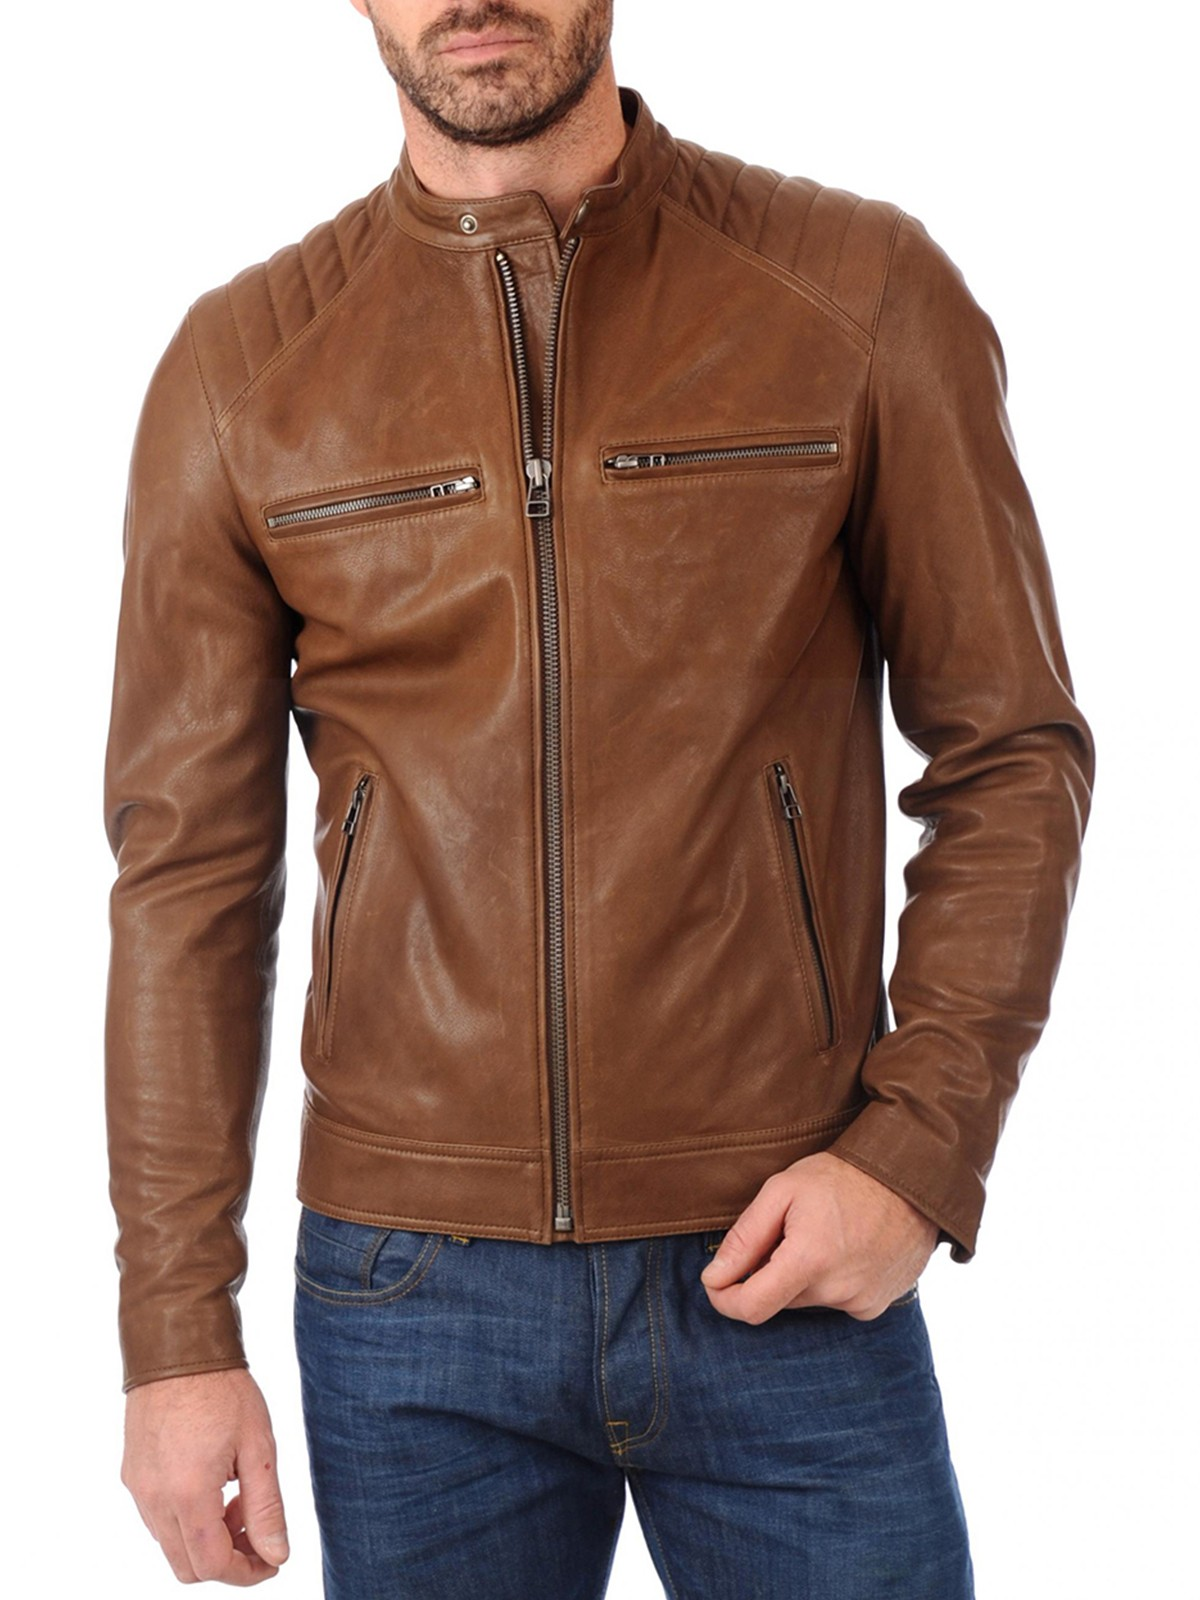 FASN490-Classic-Mens-Brown-Biker-Real-Leather-Jacket-Featured-1-2-1-1-1-1.jpg